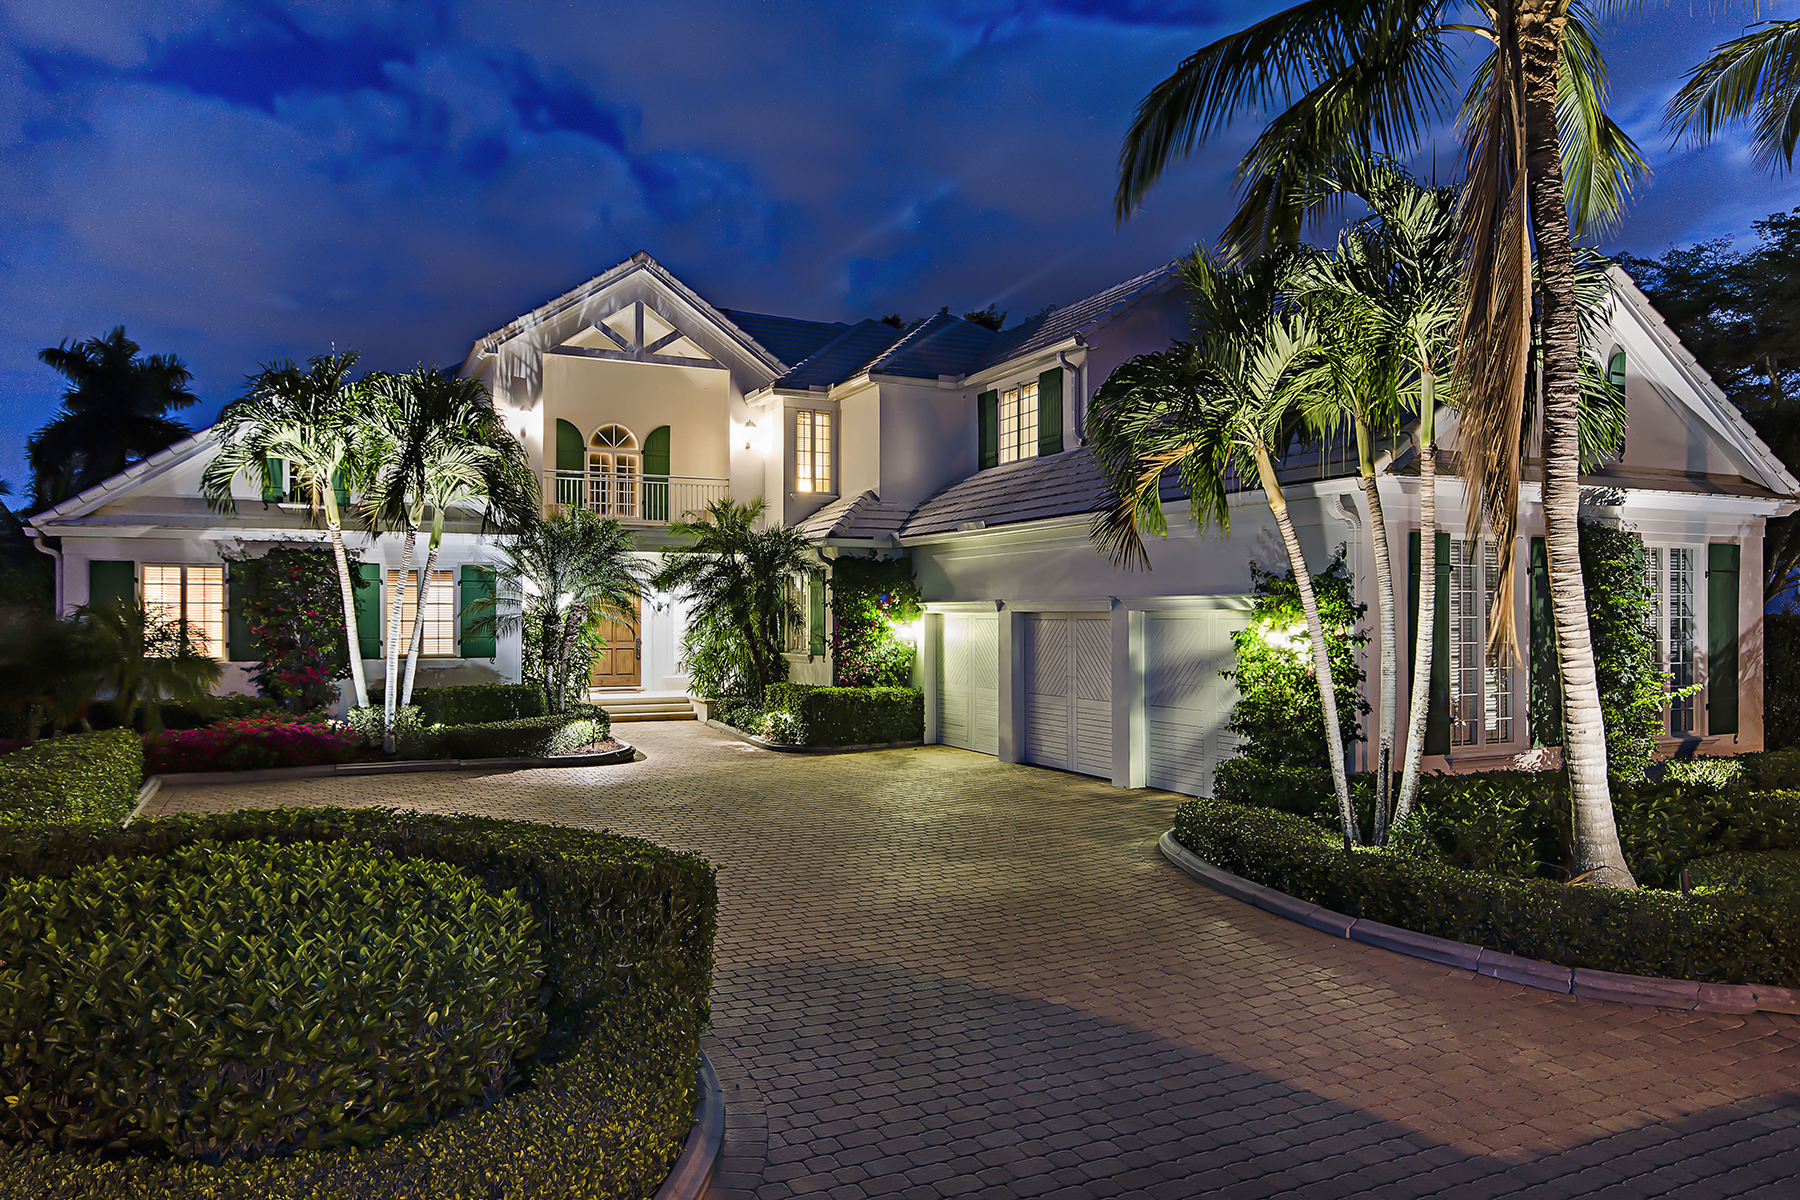 Single Family Home for Active at PORT ROYAL 1099 Spyglass Ln Naples, Florida 34102 United States